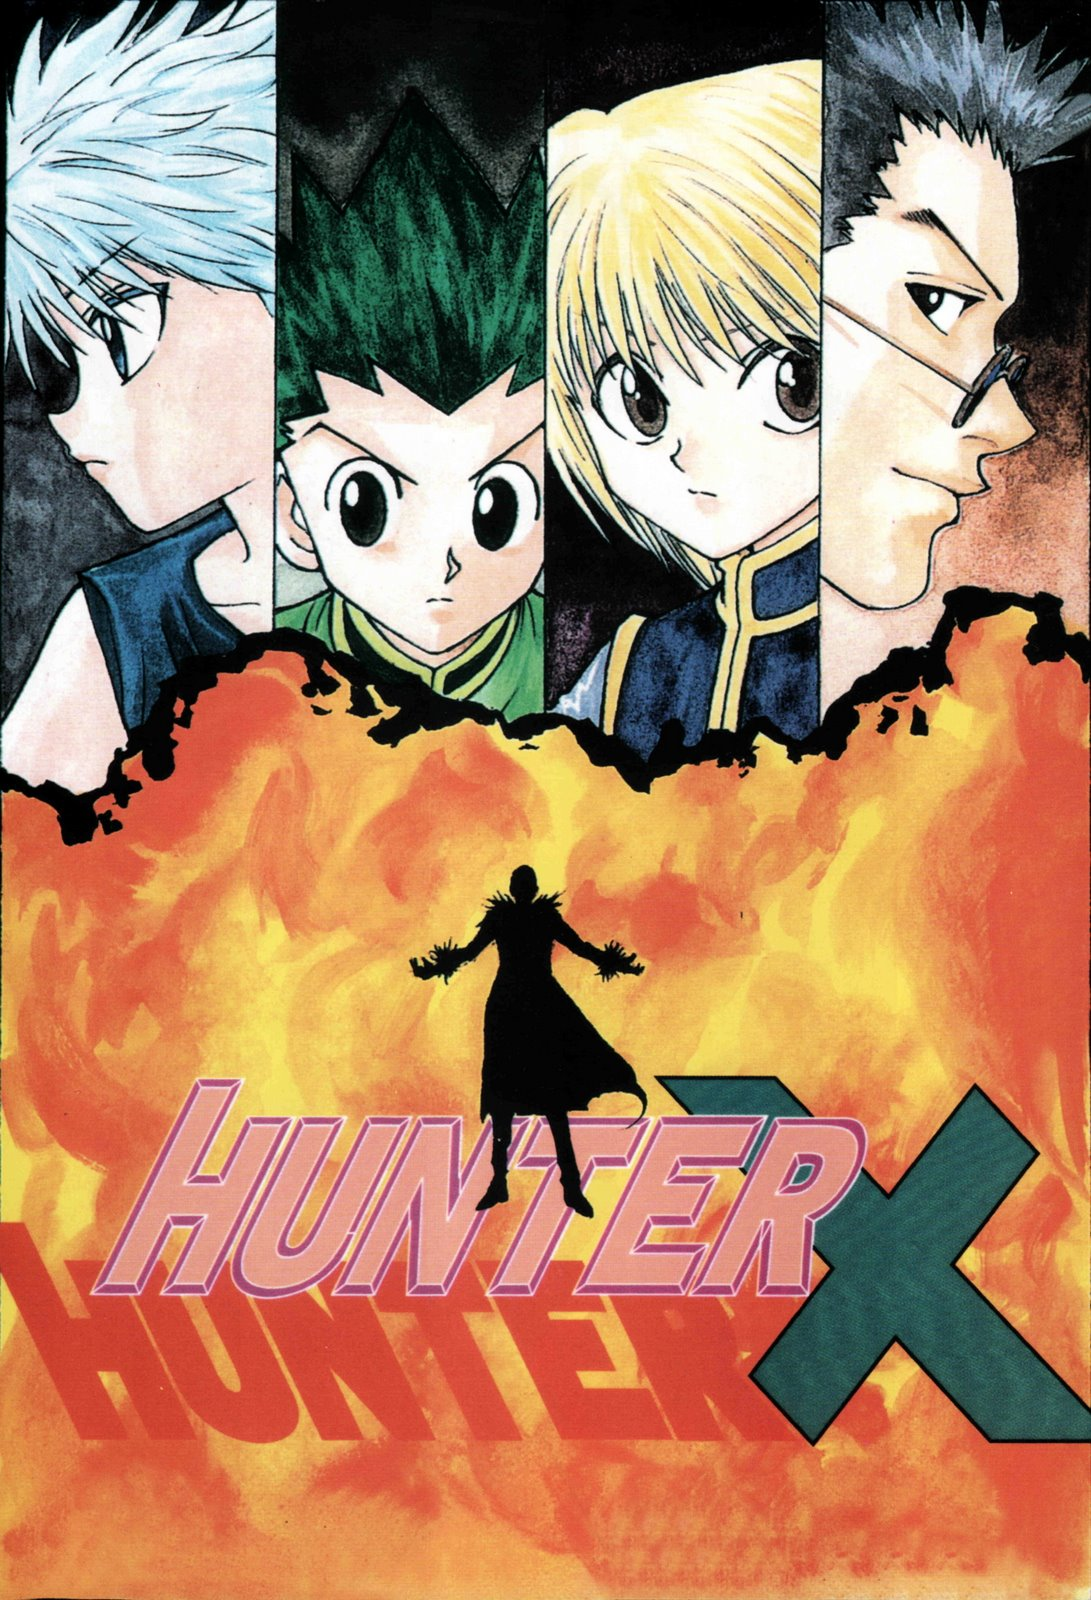 The 25 Most Anticipated Manga Ending Haruhichan.com Hunter x Hunter manga cover